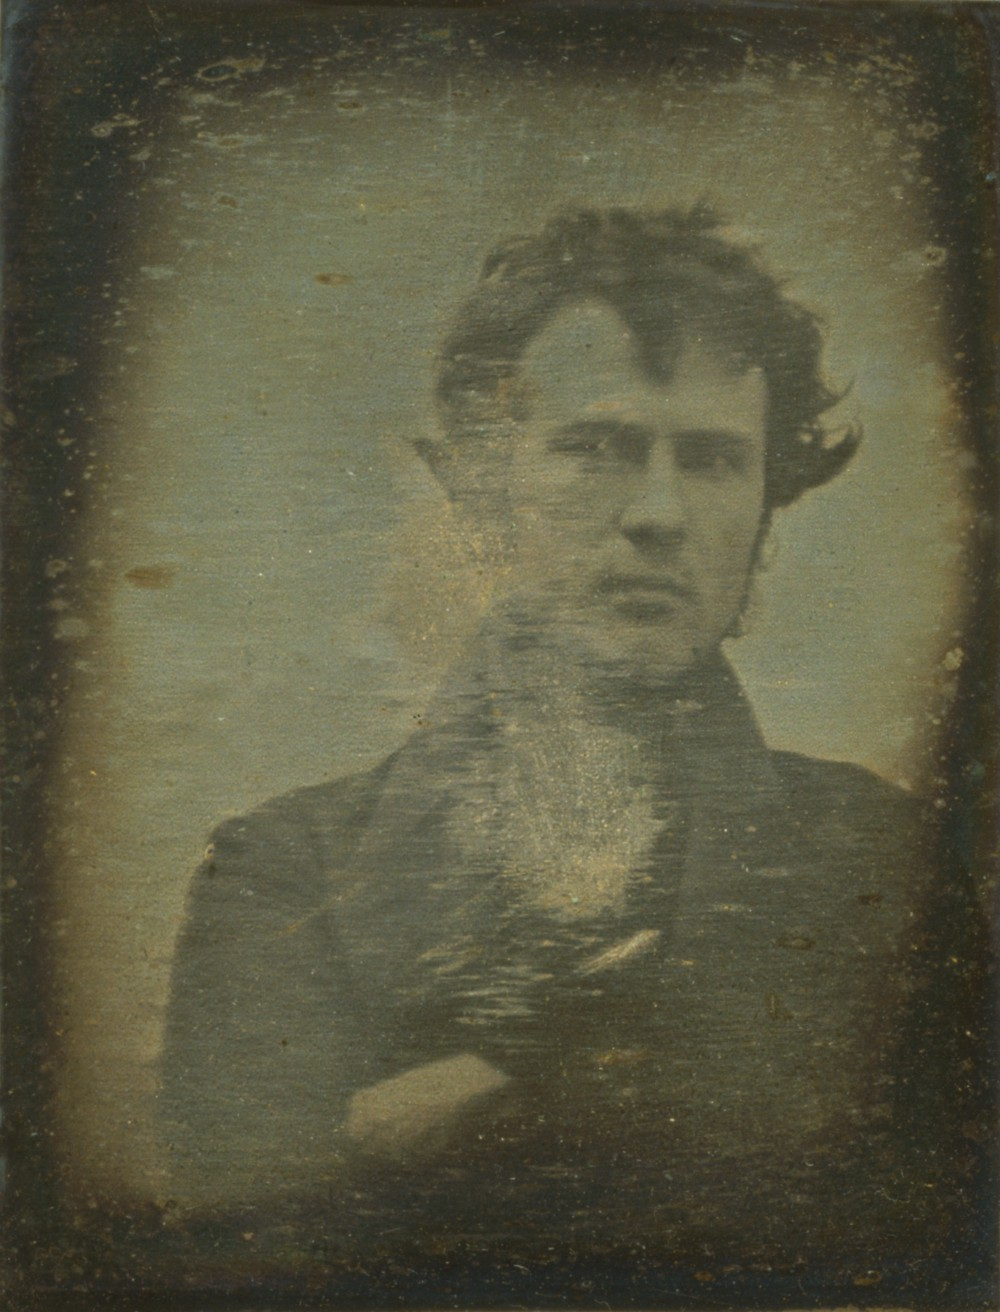 A sepia-toned photograph of a young man in a dark coat.